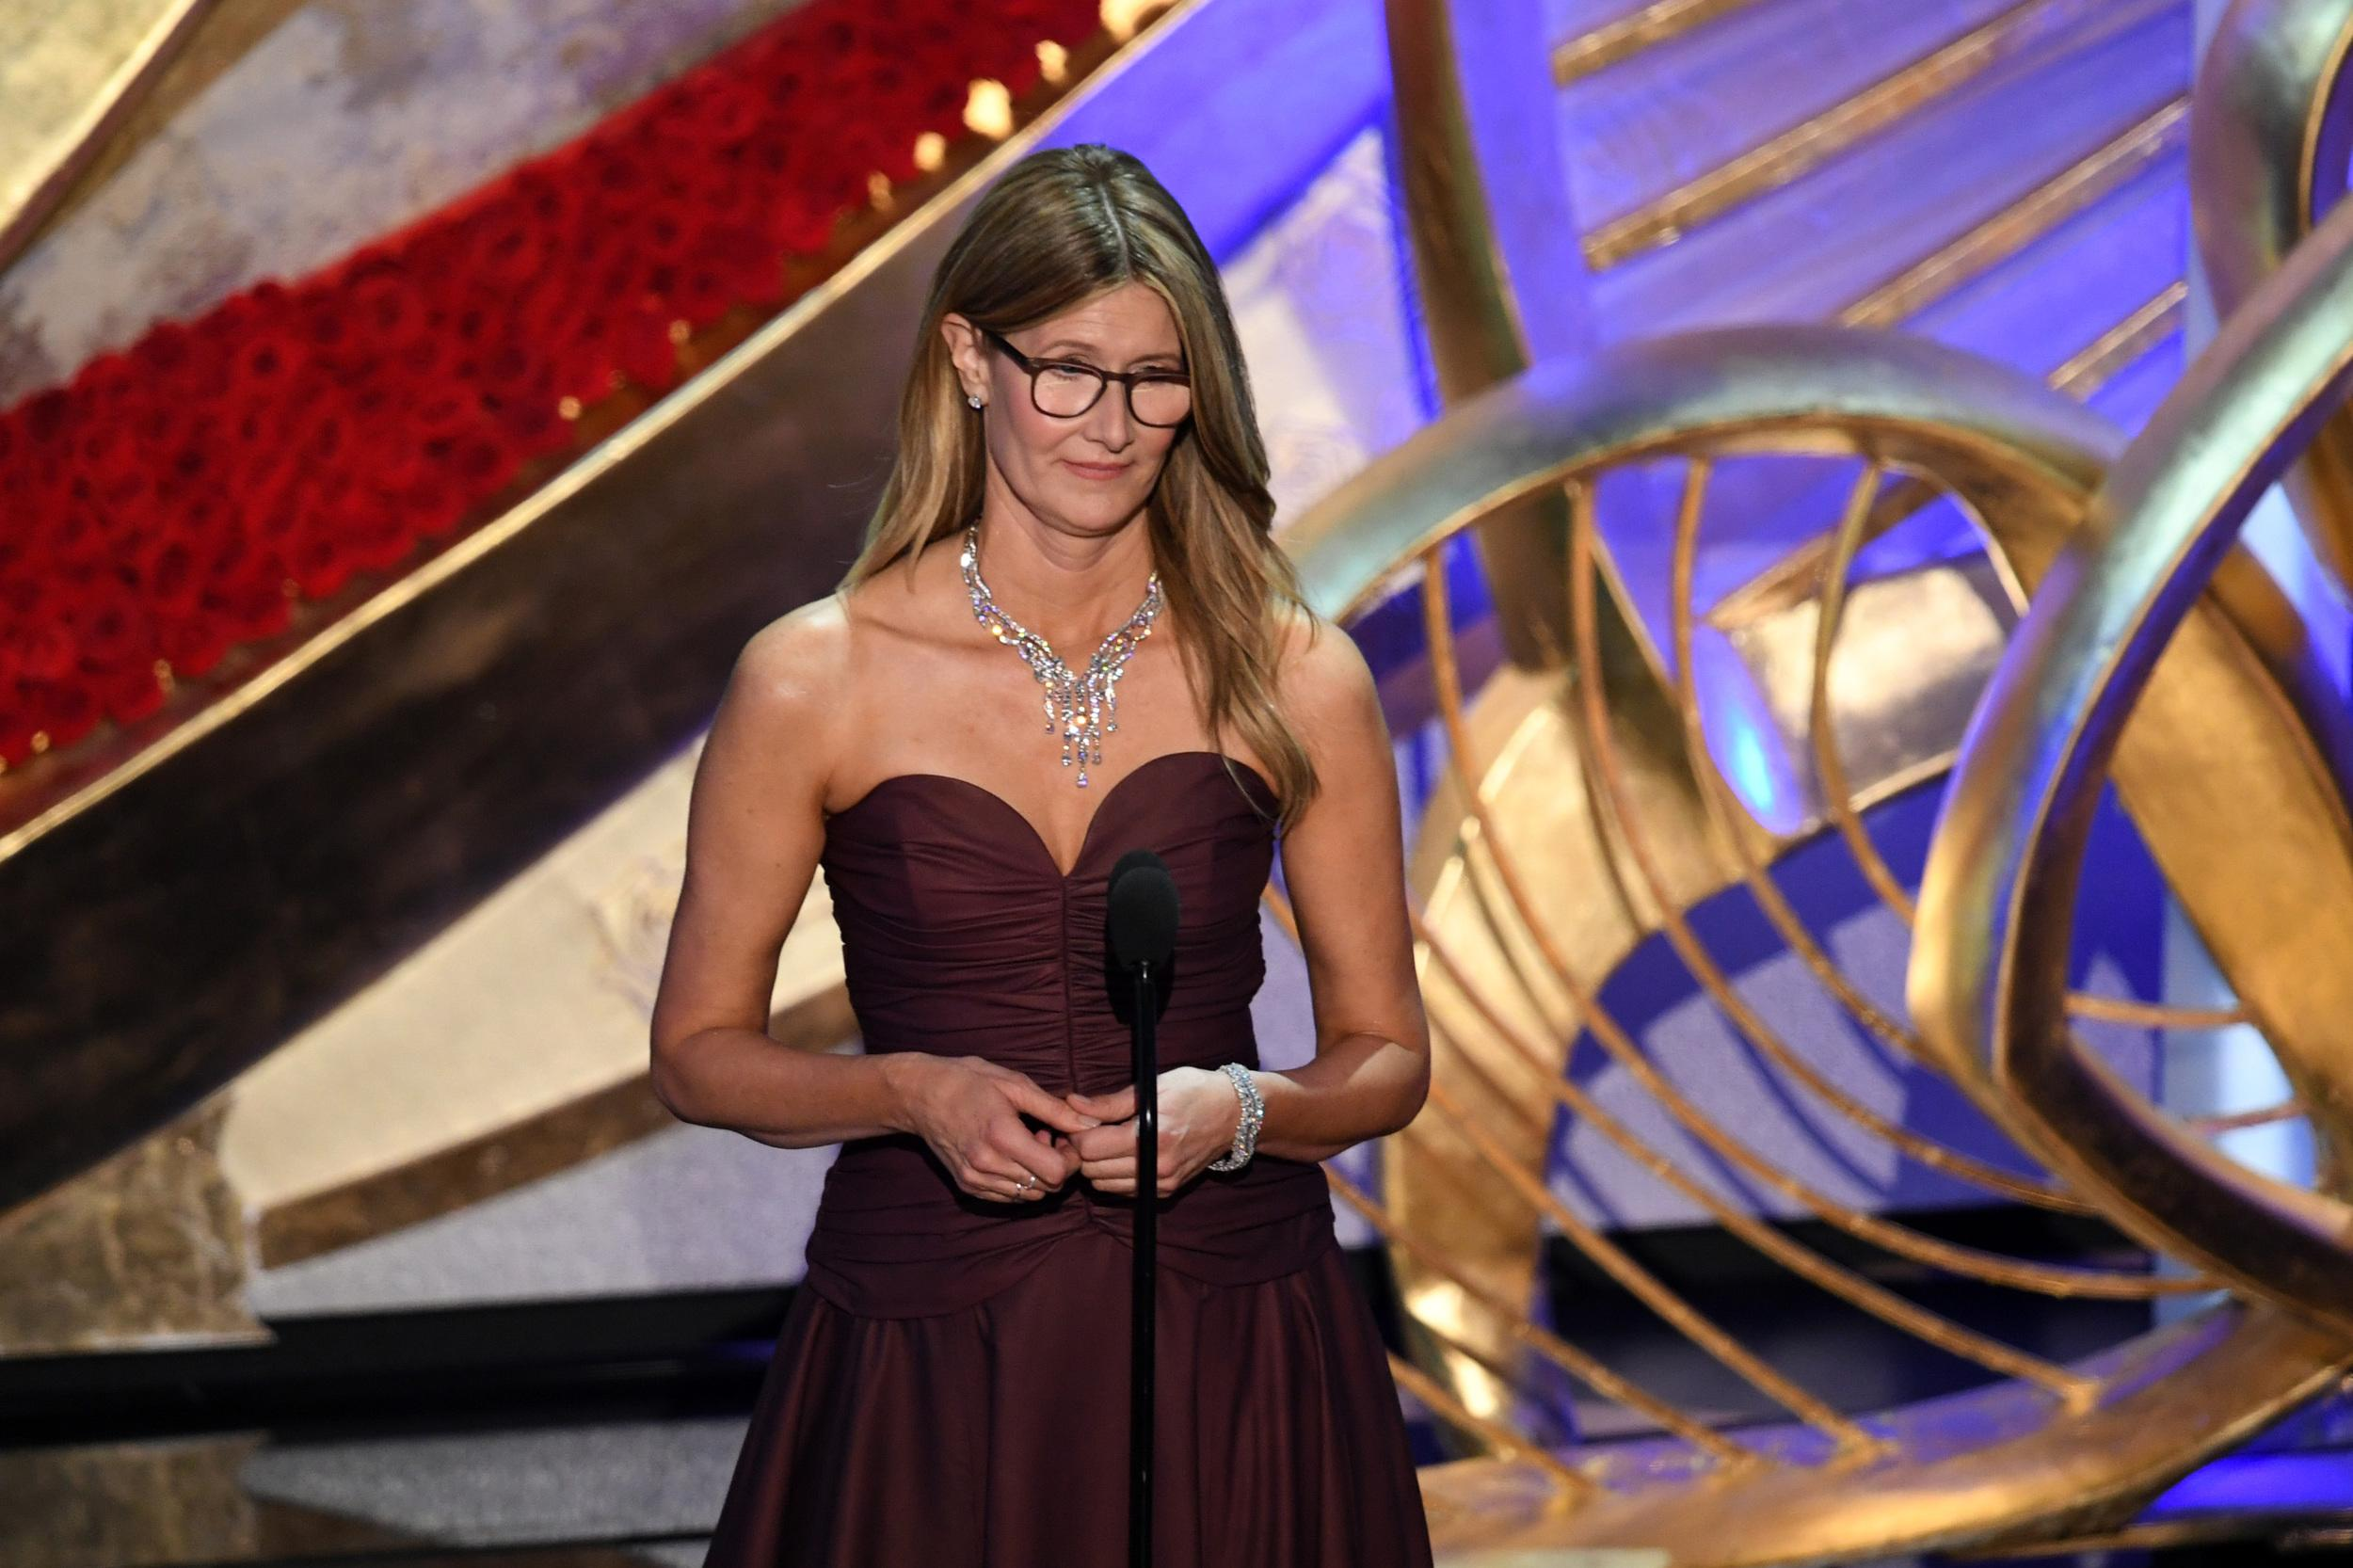 HOLLYWOOD, CALIFORNIA - FEBRUARY 24: Laura Dern speaks onstage during the 91st Annual Academy Awards at Dolby Theatre on February 24, 2019 in Hollywood, California. (Photo by Kevin Winter/Getty Images)